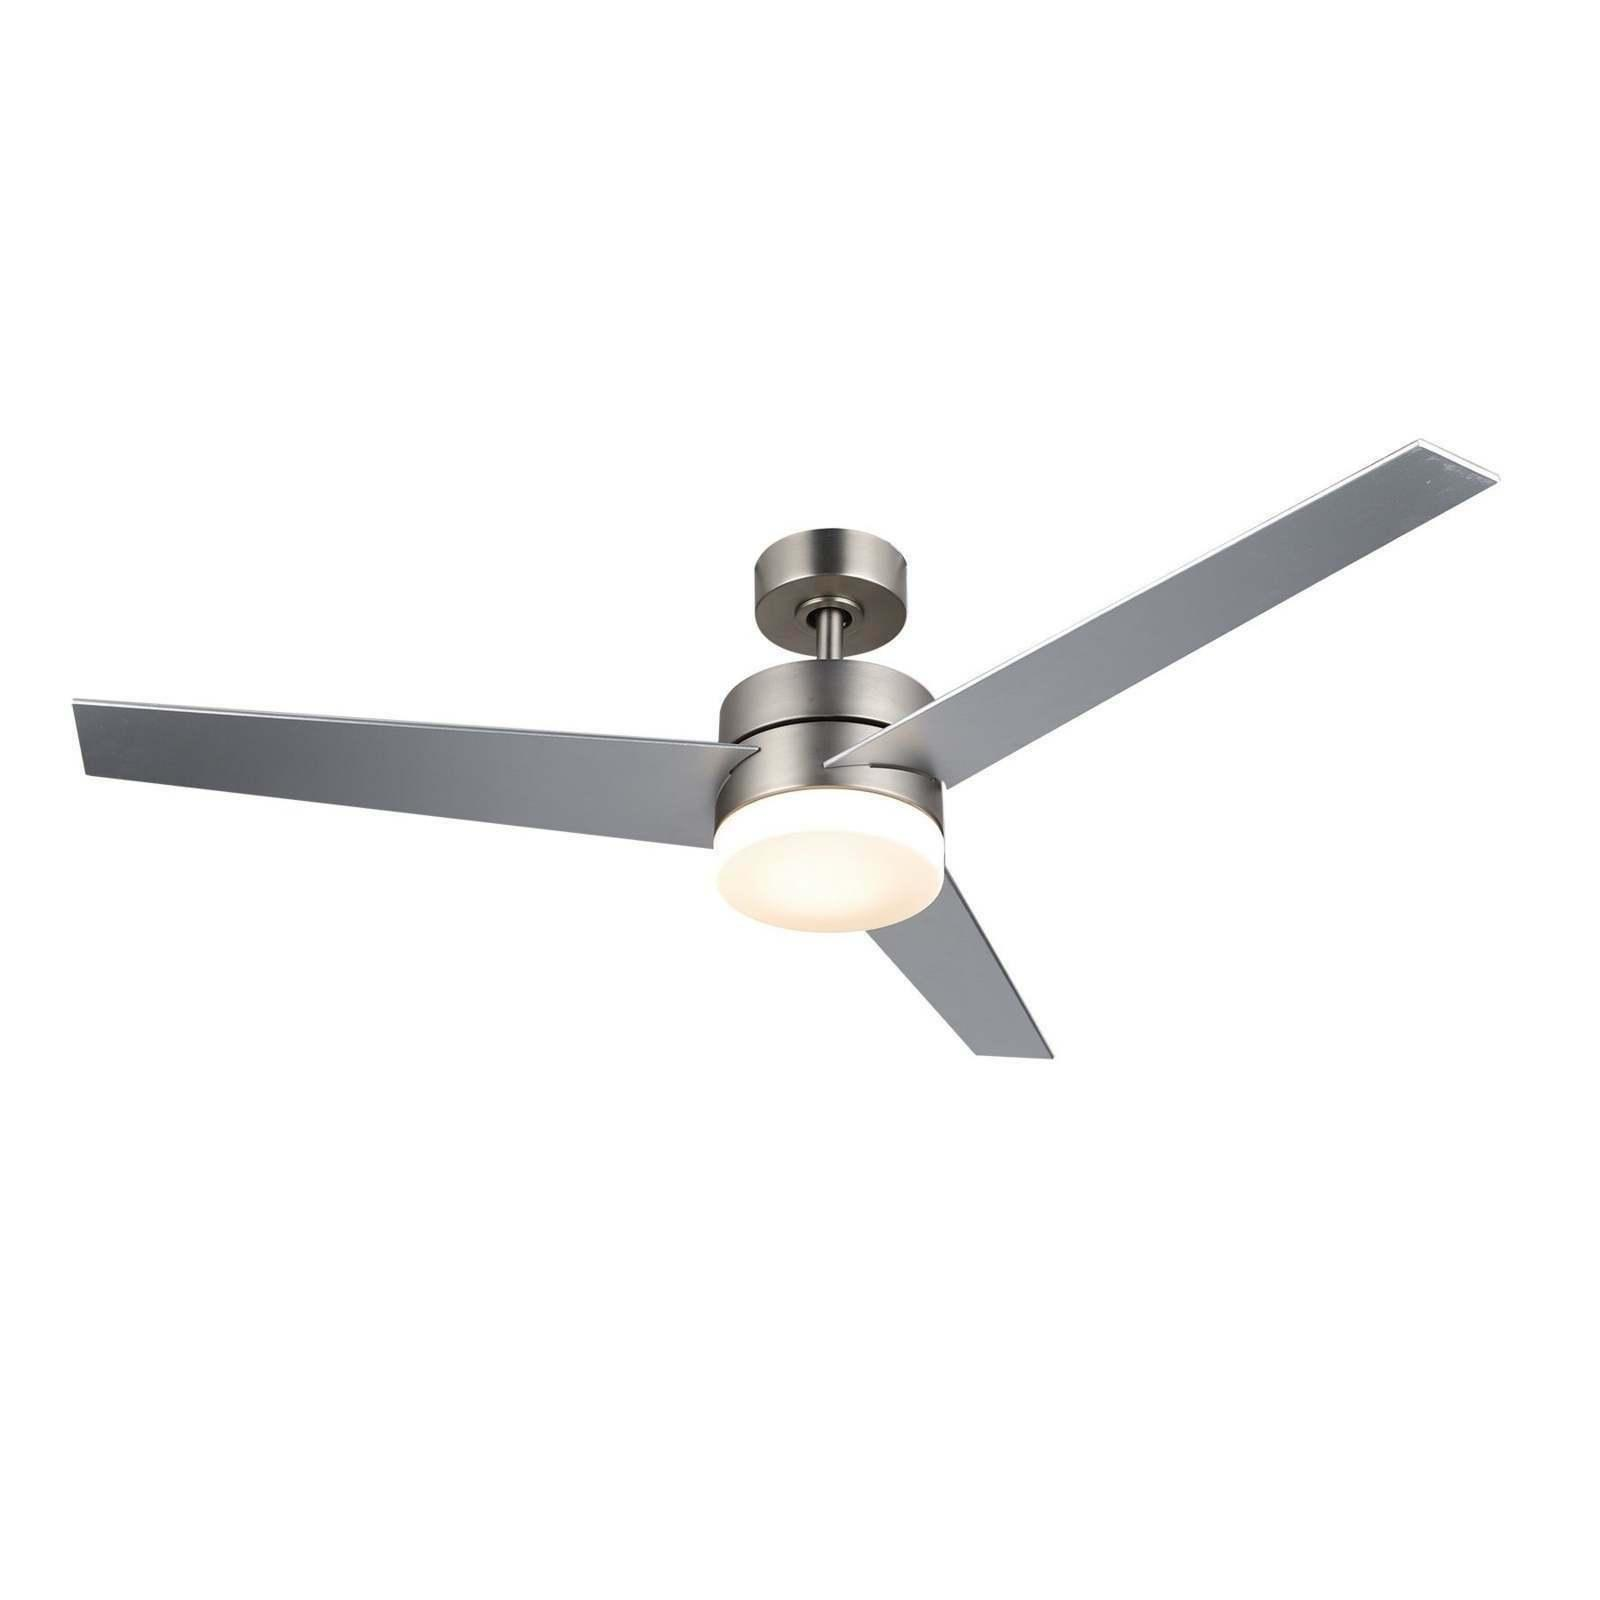 3 blade speed contemporary ceiling fan